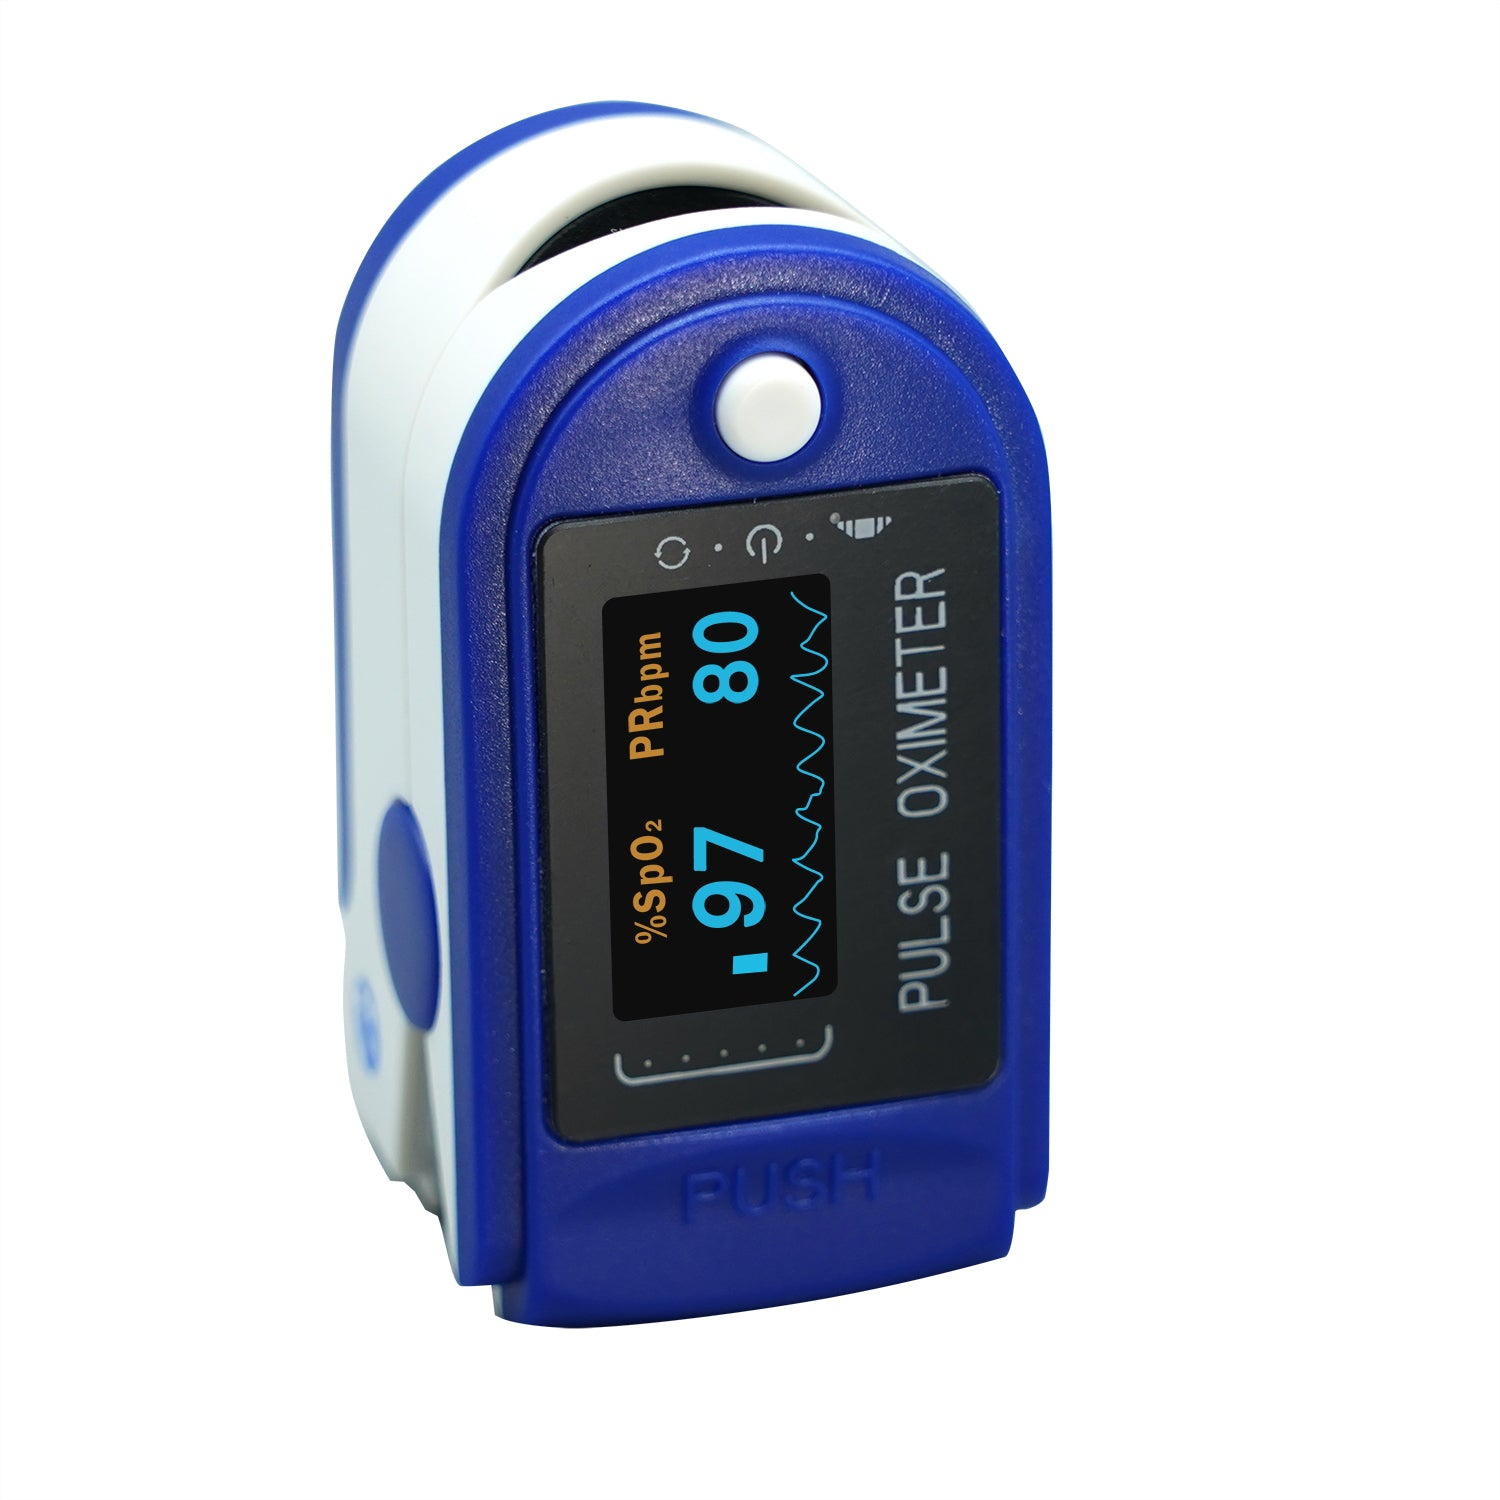 iHealth wired fingertip pulse oximeter front view